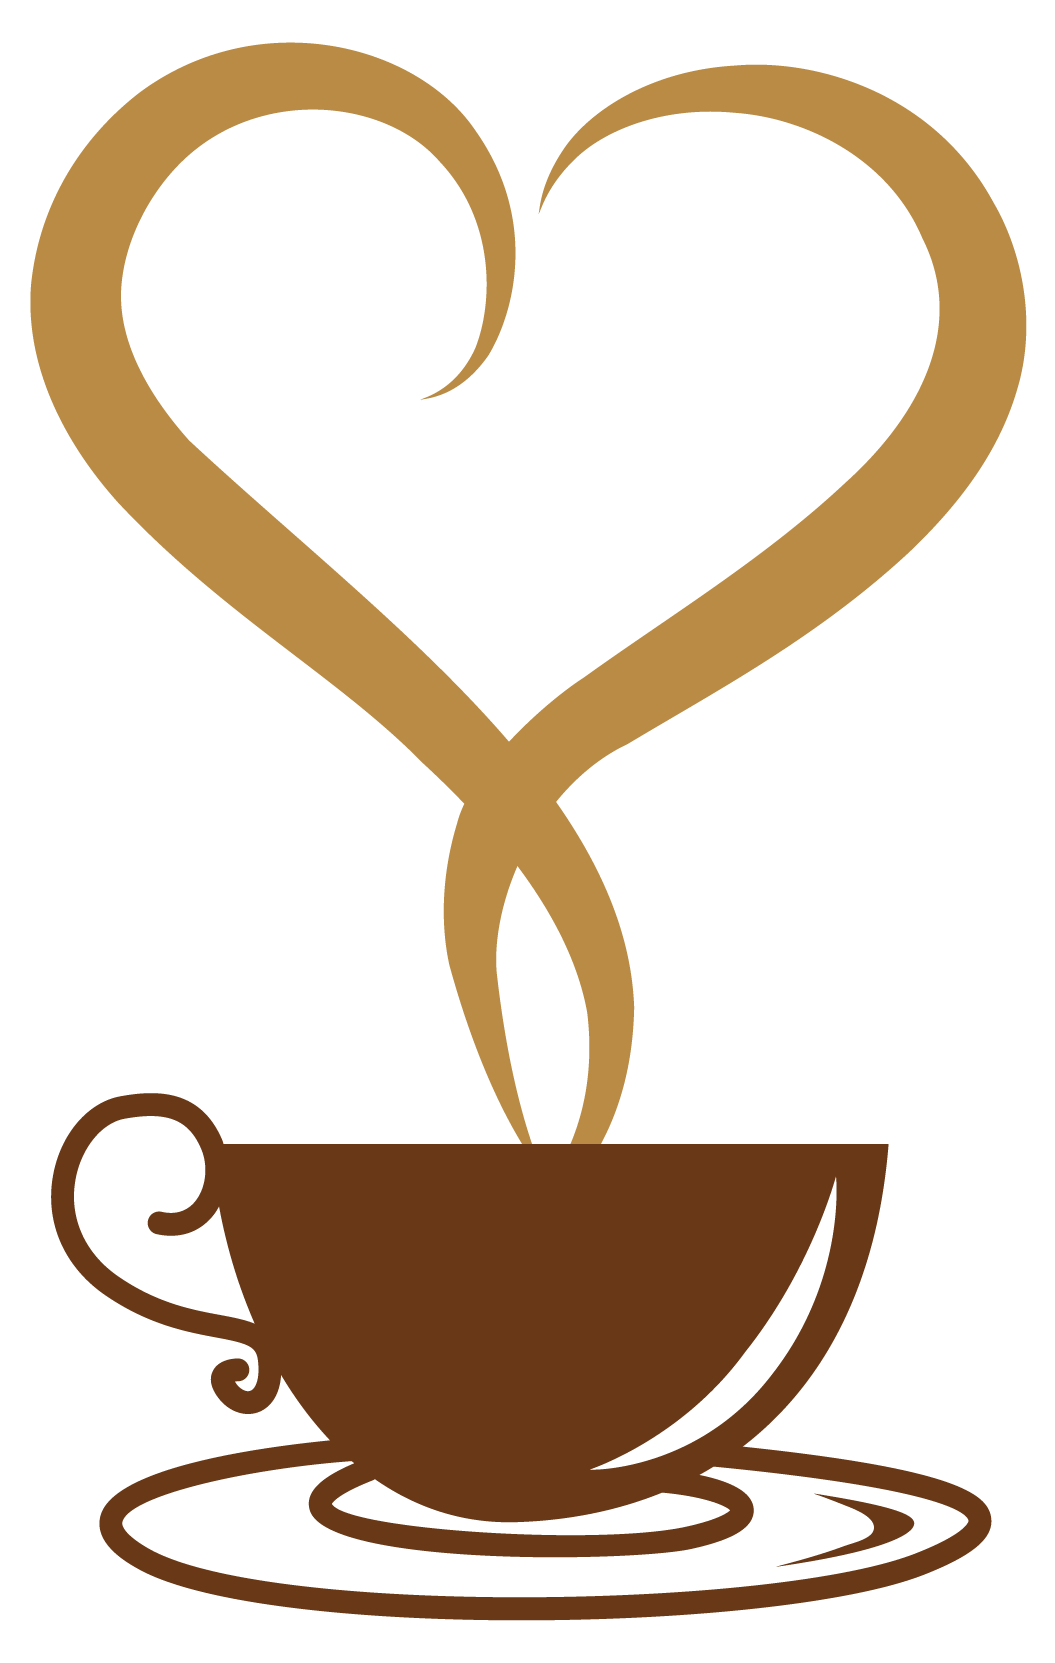 medium resolution of coffee cup starbucks cup clipart top pictures gallery image 14122